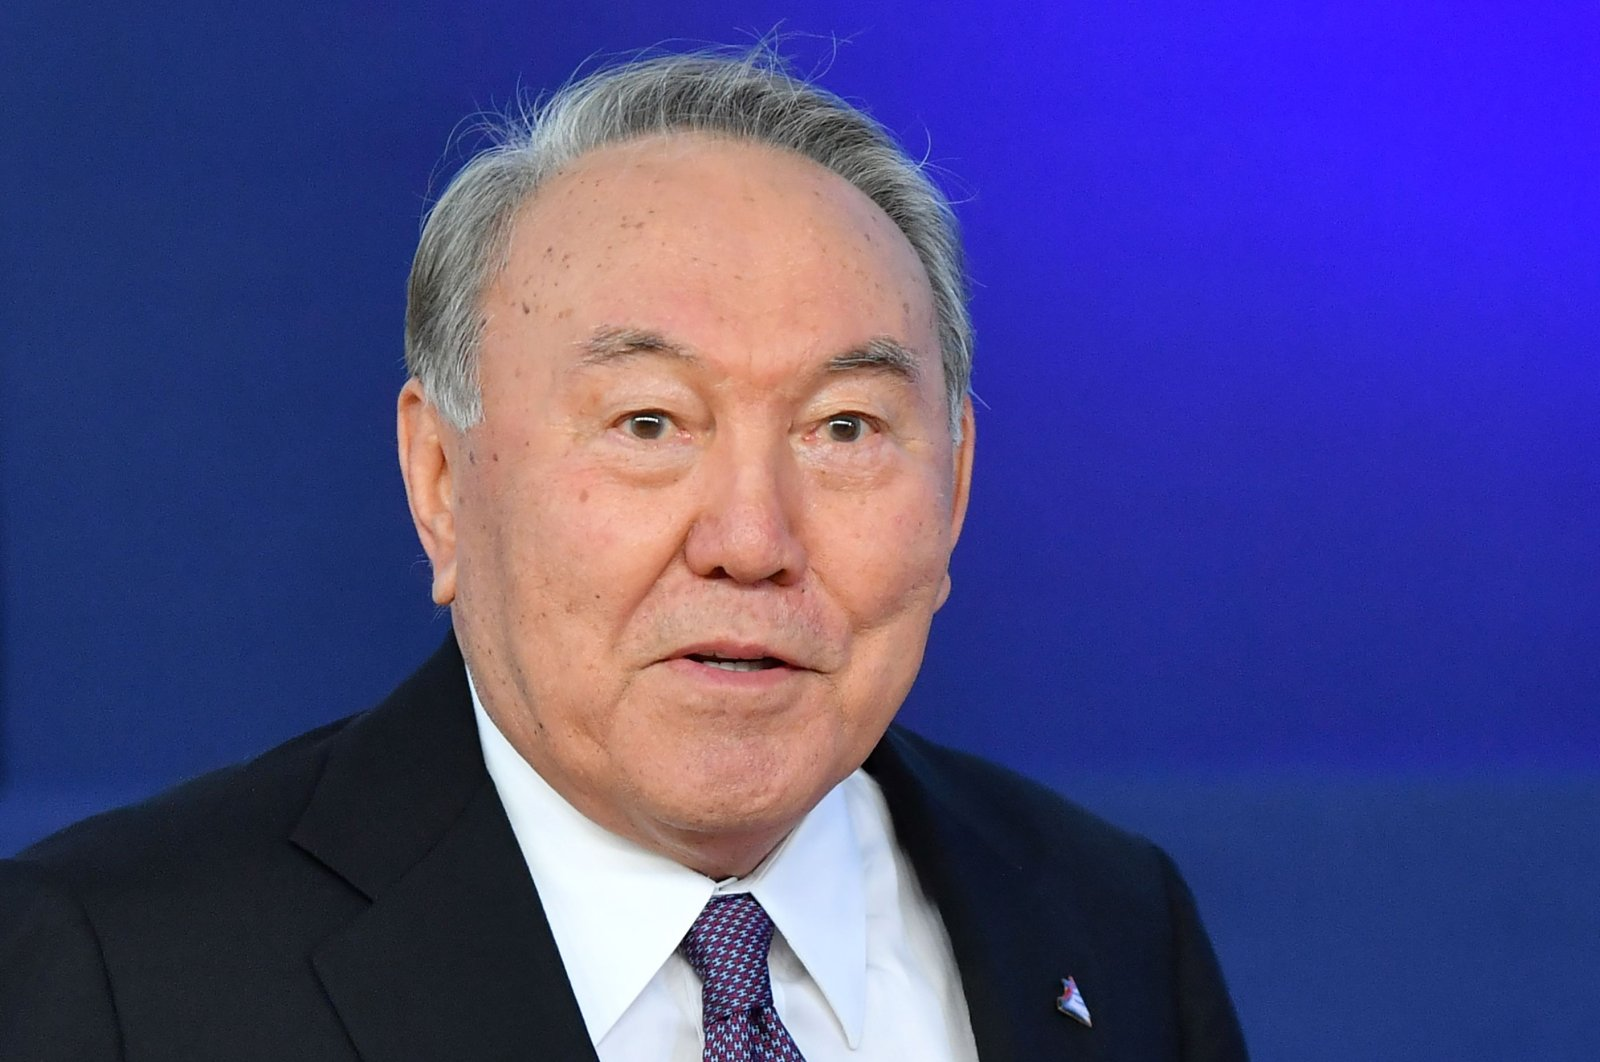 Kazakhstan's President Nursultan Nazarbayev looks on as he arrives for an Asia Europe Meeting (ASEM) at the European Council in Brussels, Oct. 18, 2018. (AFP Photo)